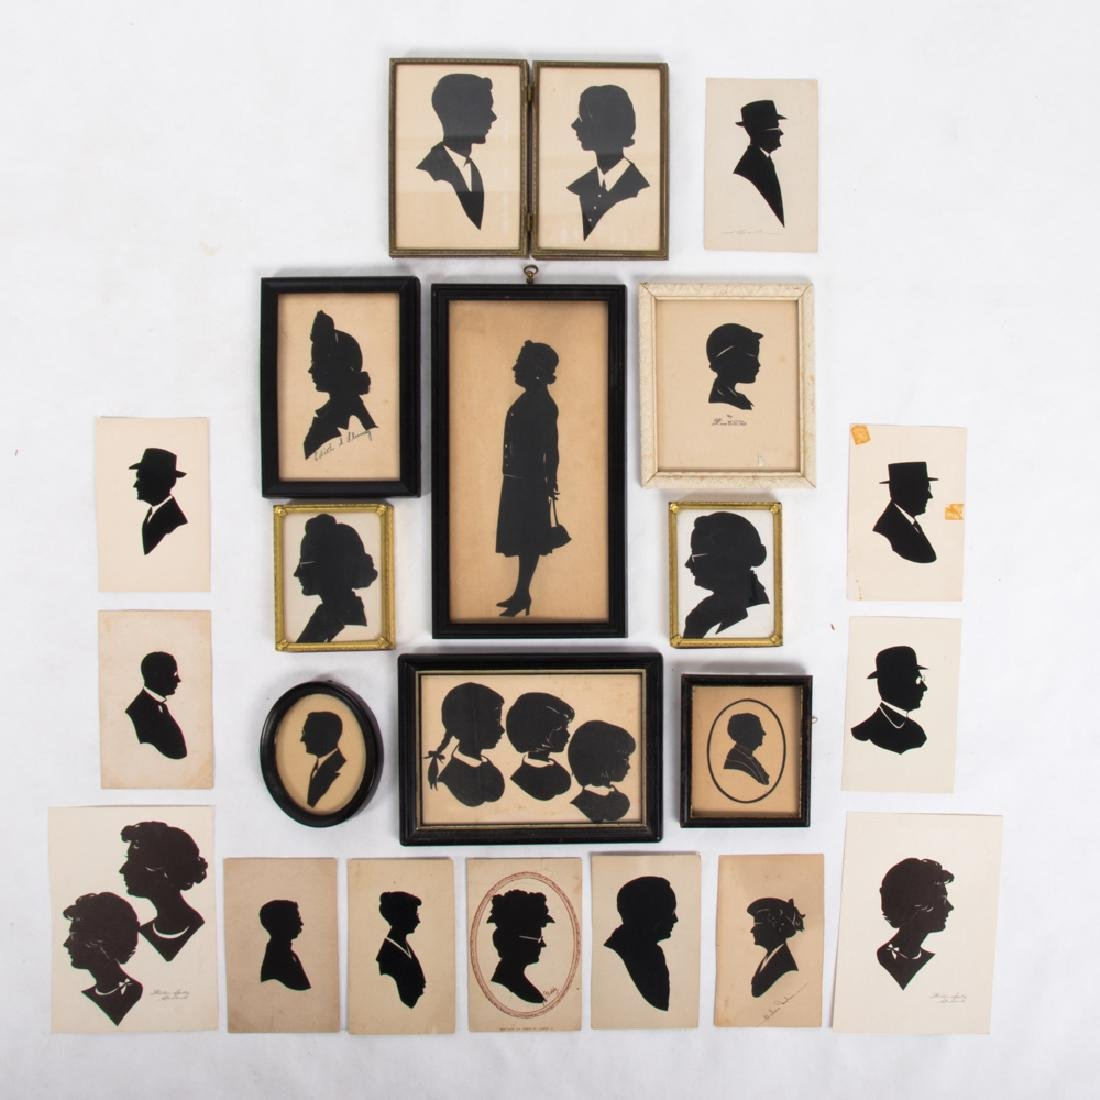 A Collection of Twenty-Two Cut Paper Silhouettes